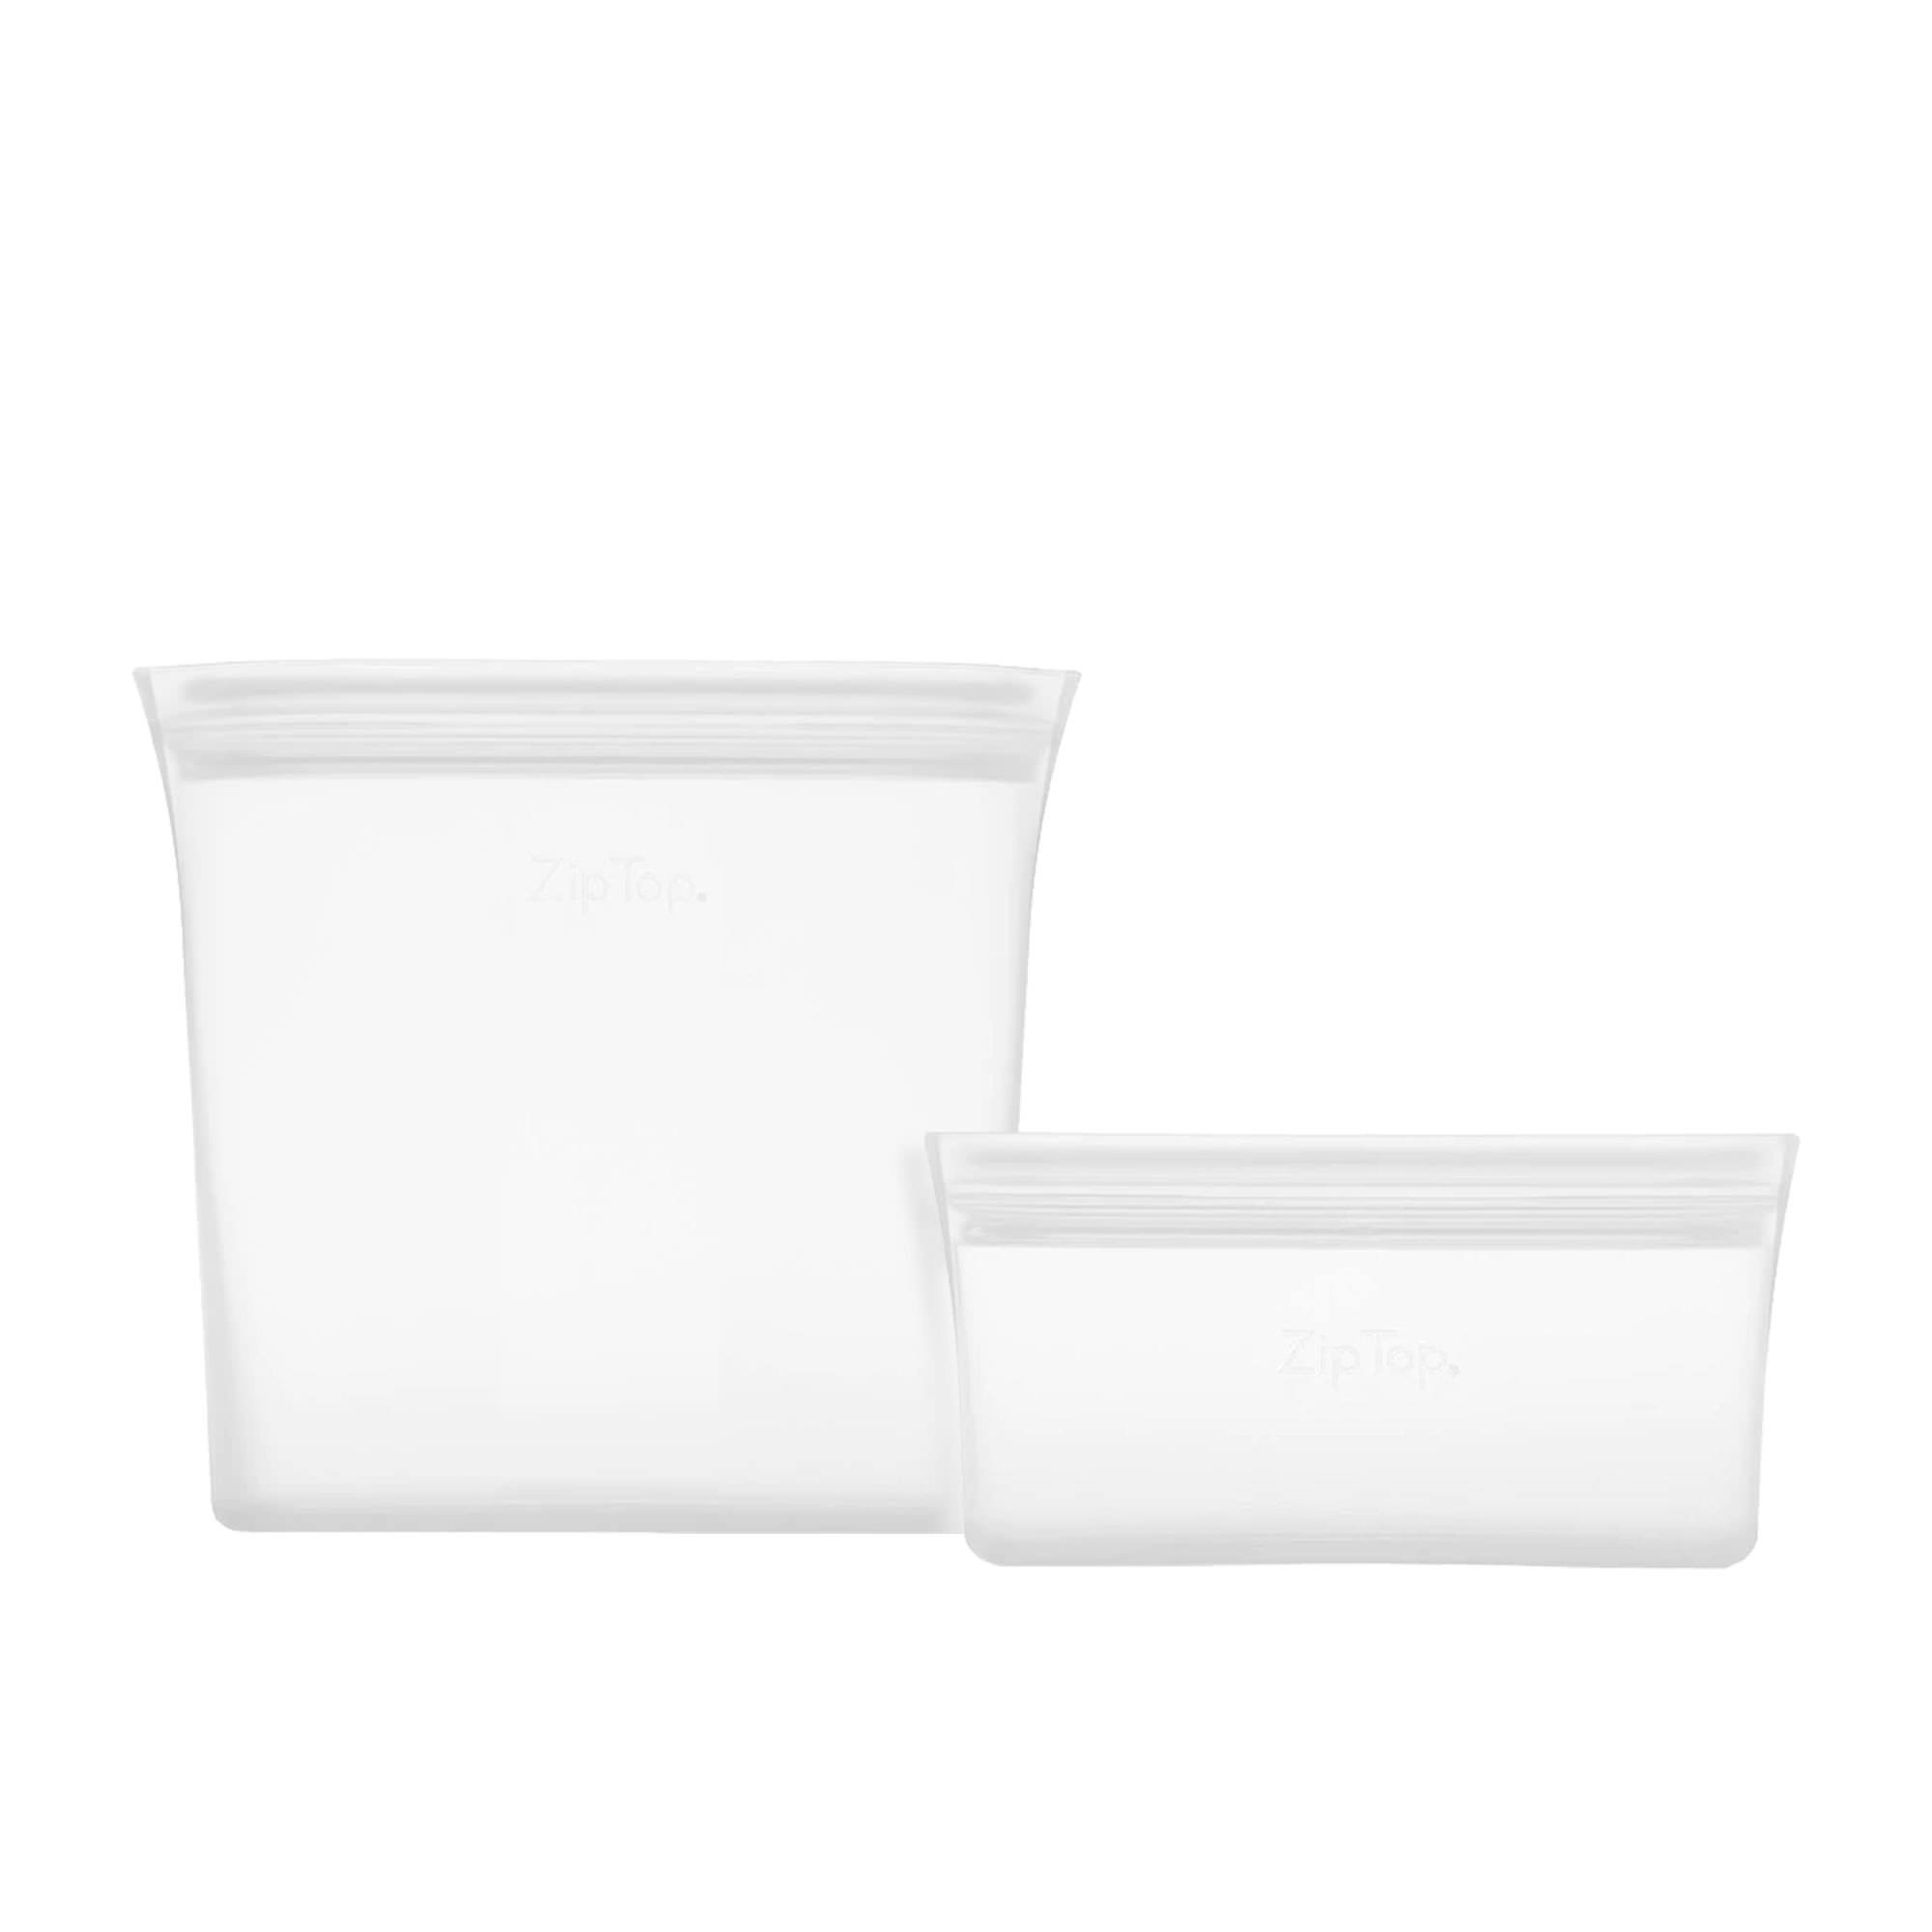 Zip Top 2pc Platinum Silicone Bag Set Clear